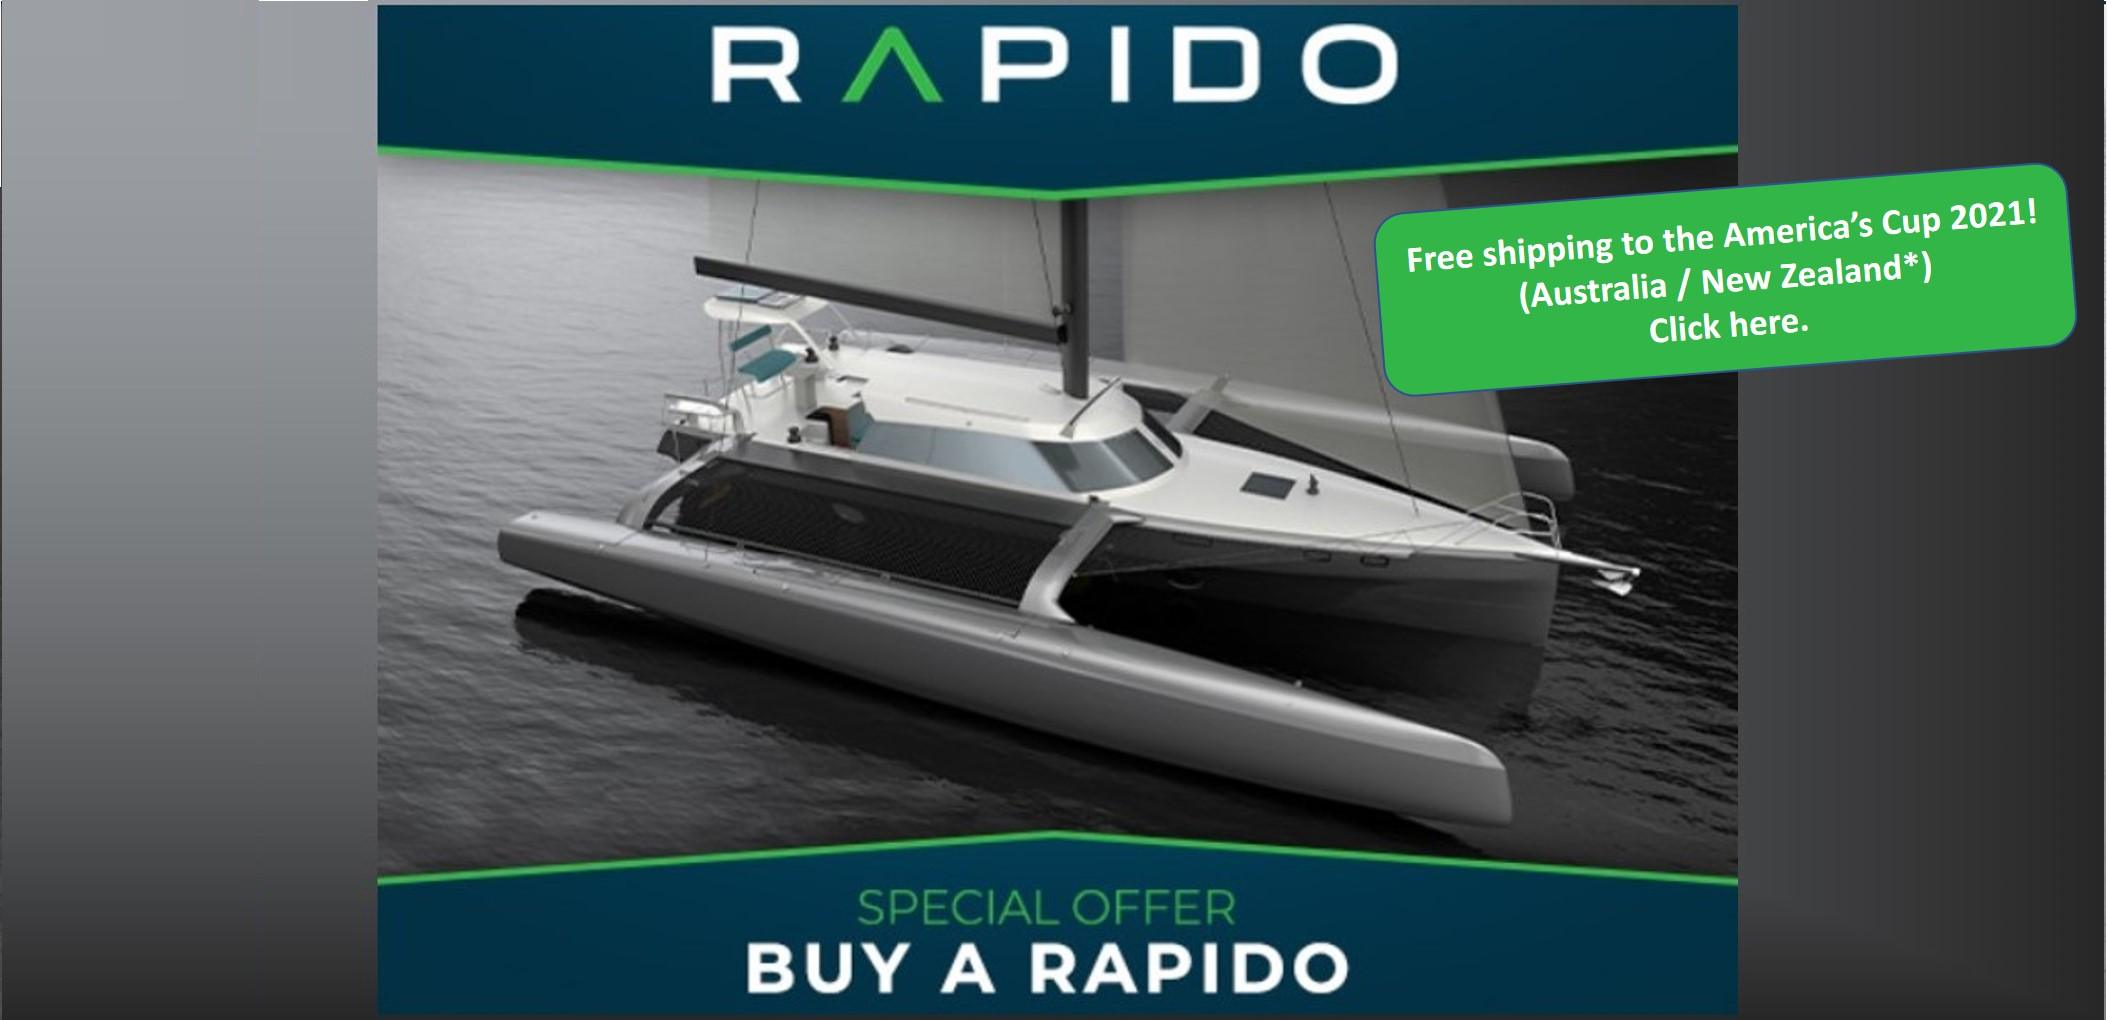 Nautic Expo blasts database with Rapido offer